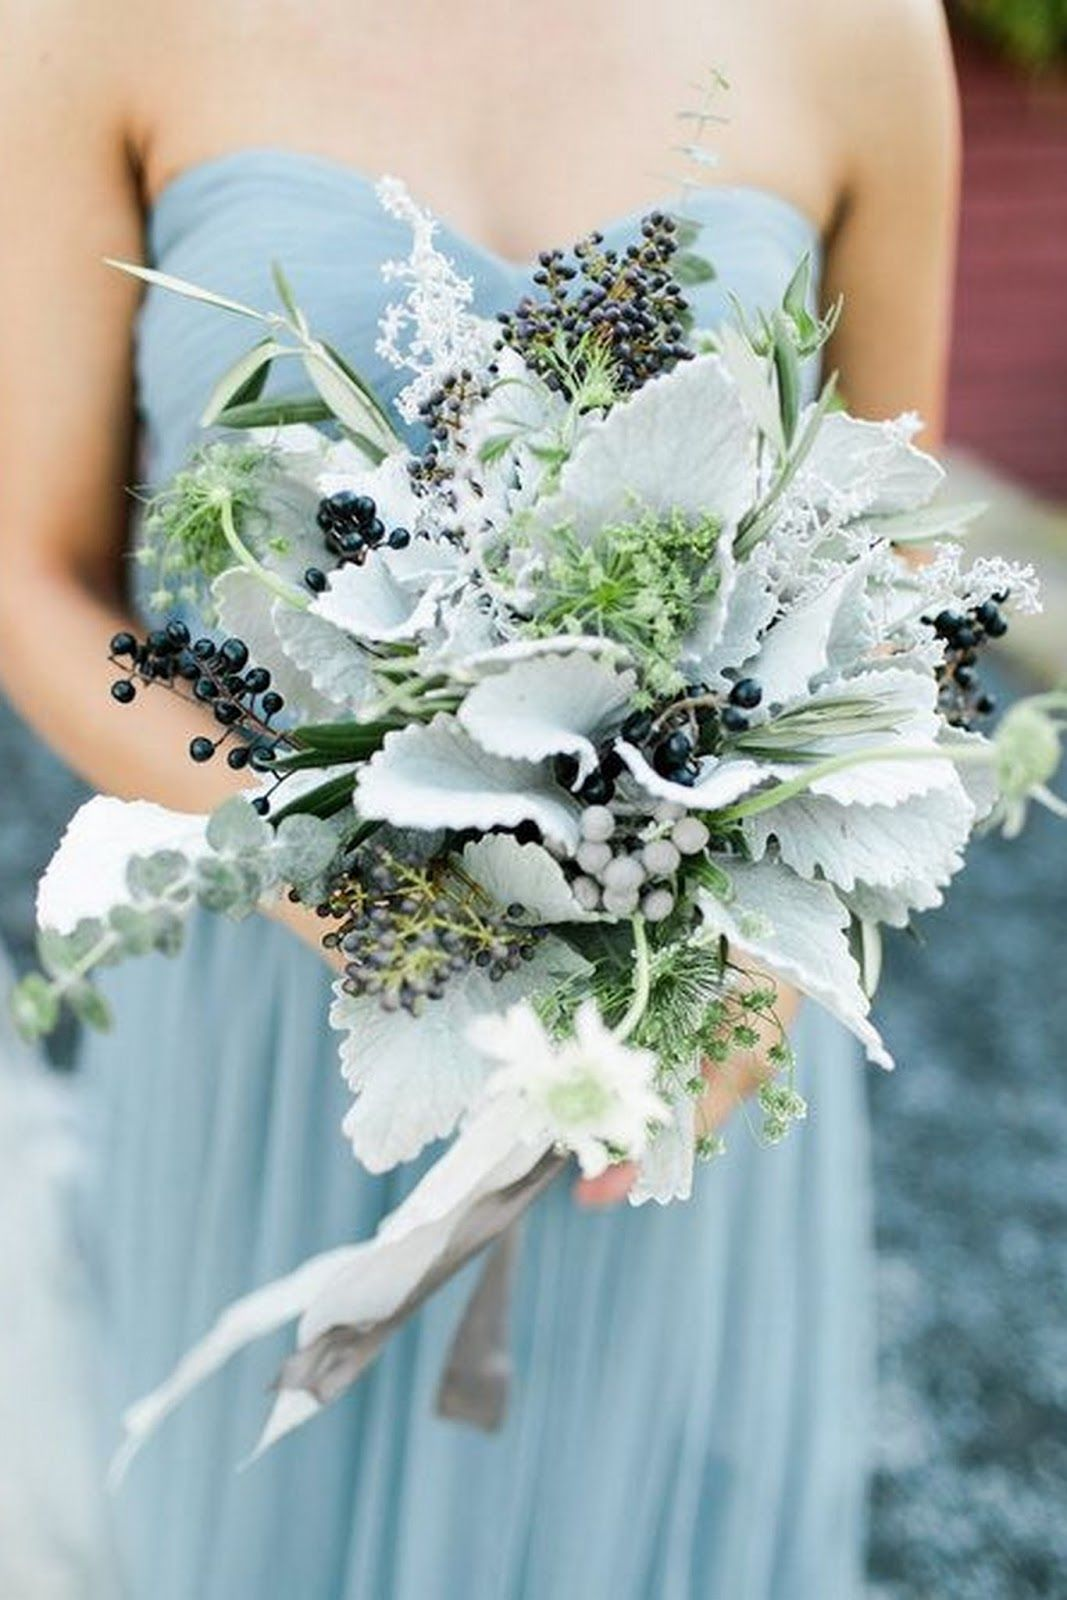 Dusty miller adds a delicate wintery touch to these gorgeous